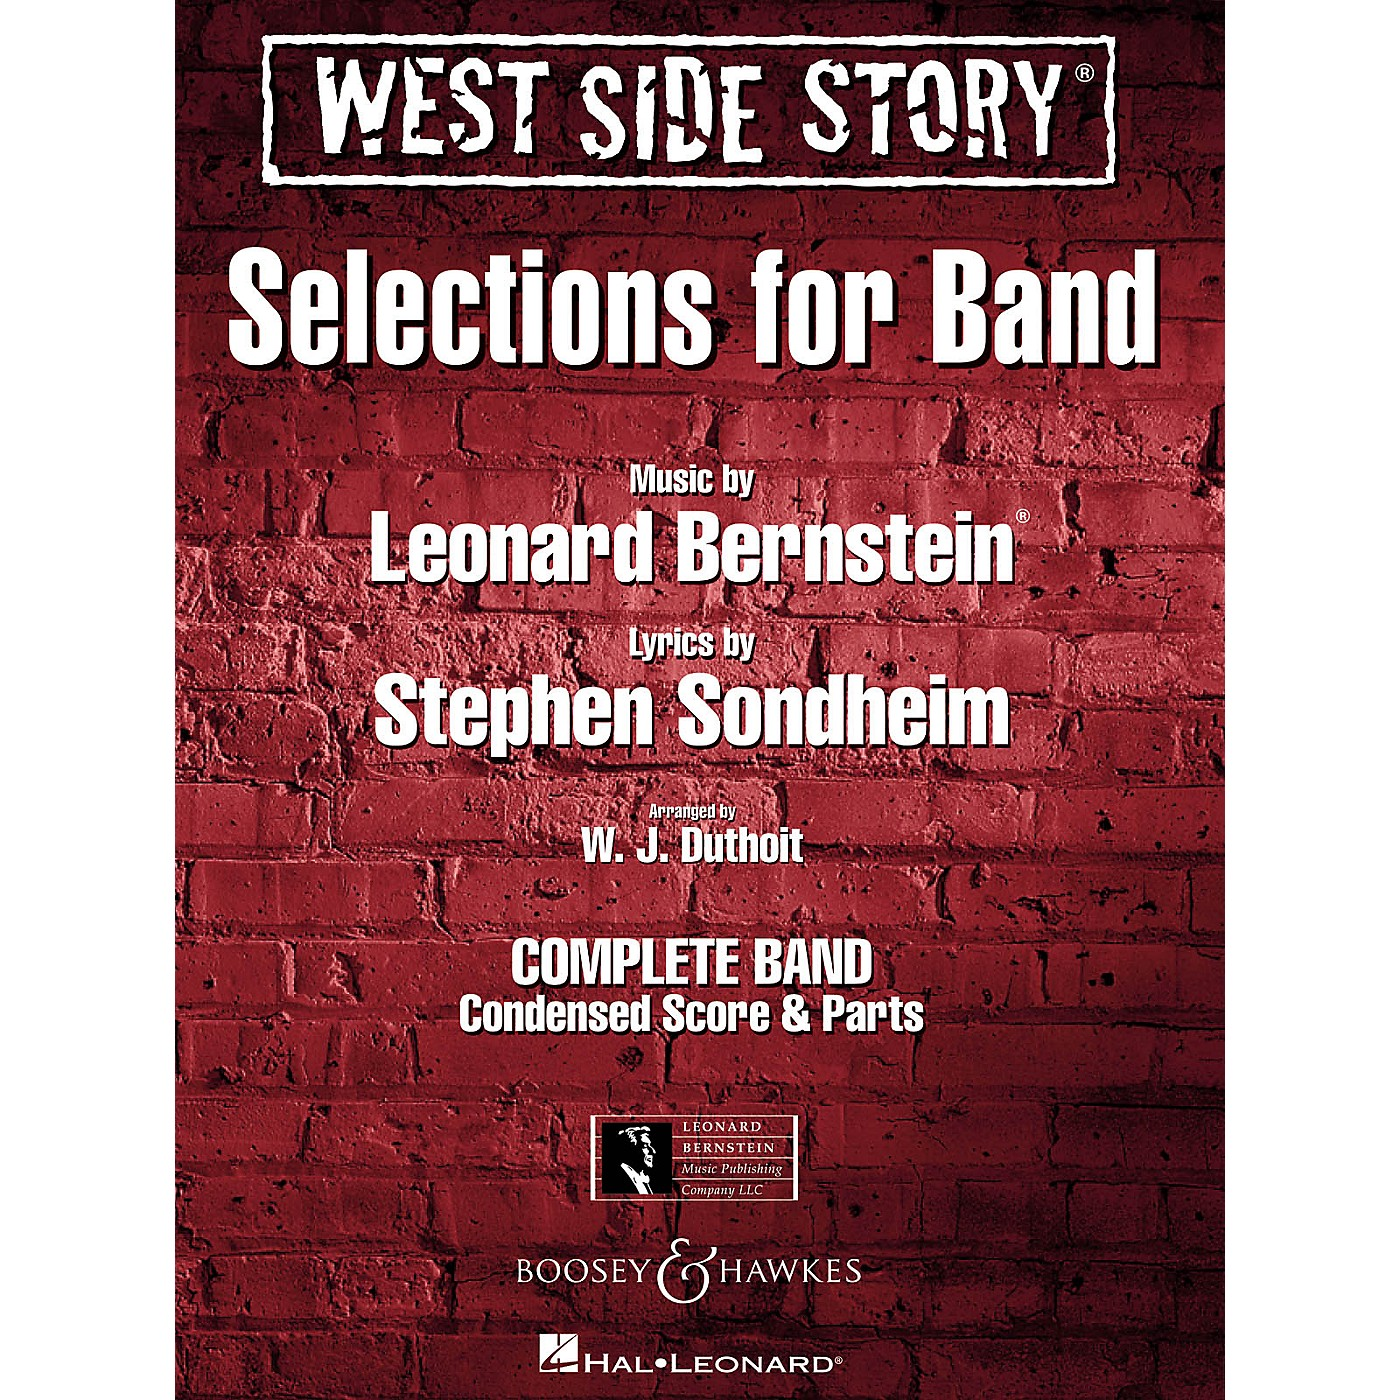 Hal Leonard West Side Story - Selections for Band Concert Band Level 4-5 Arranged by W.J. Duthoit thumbnail